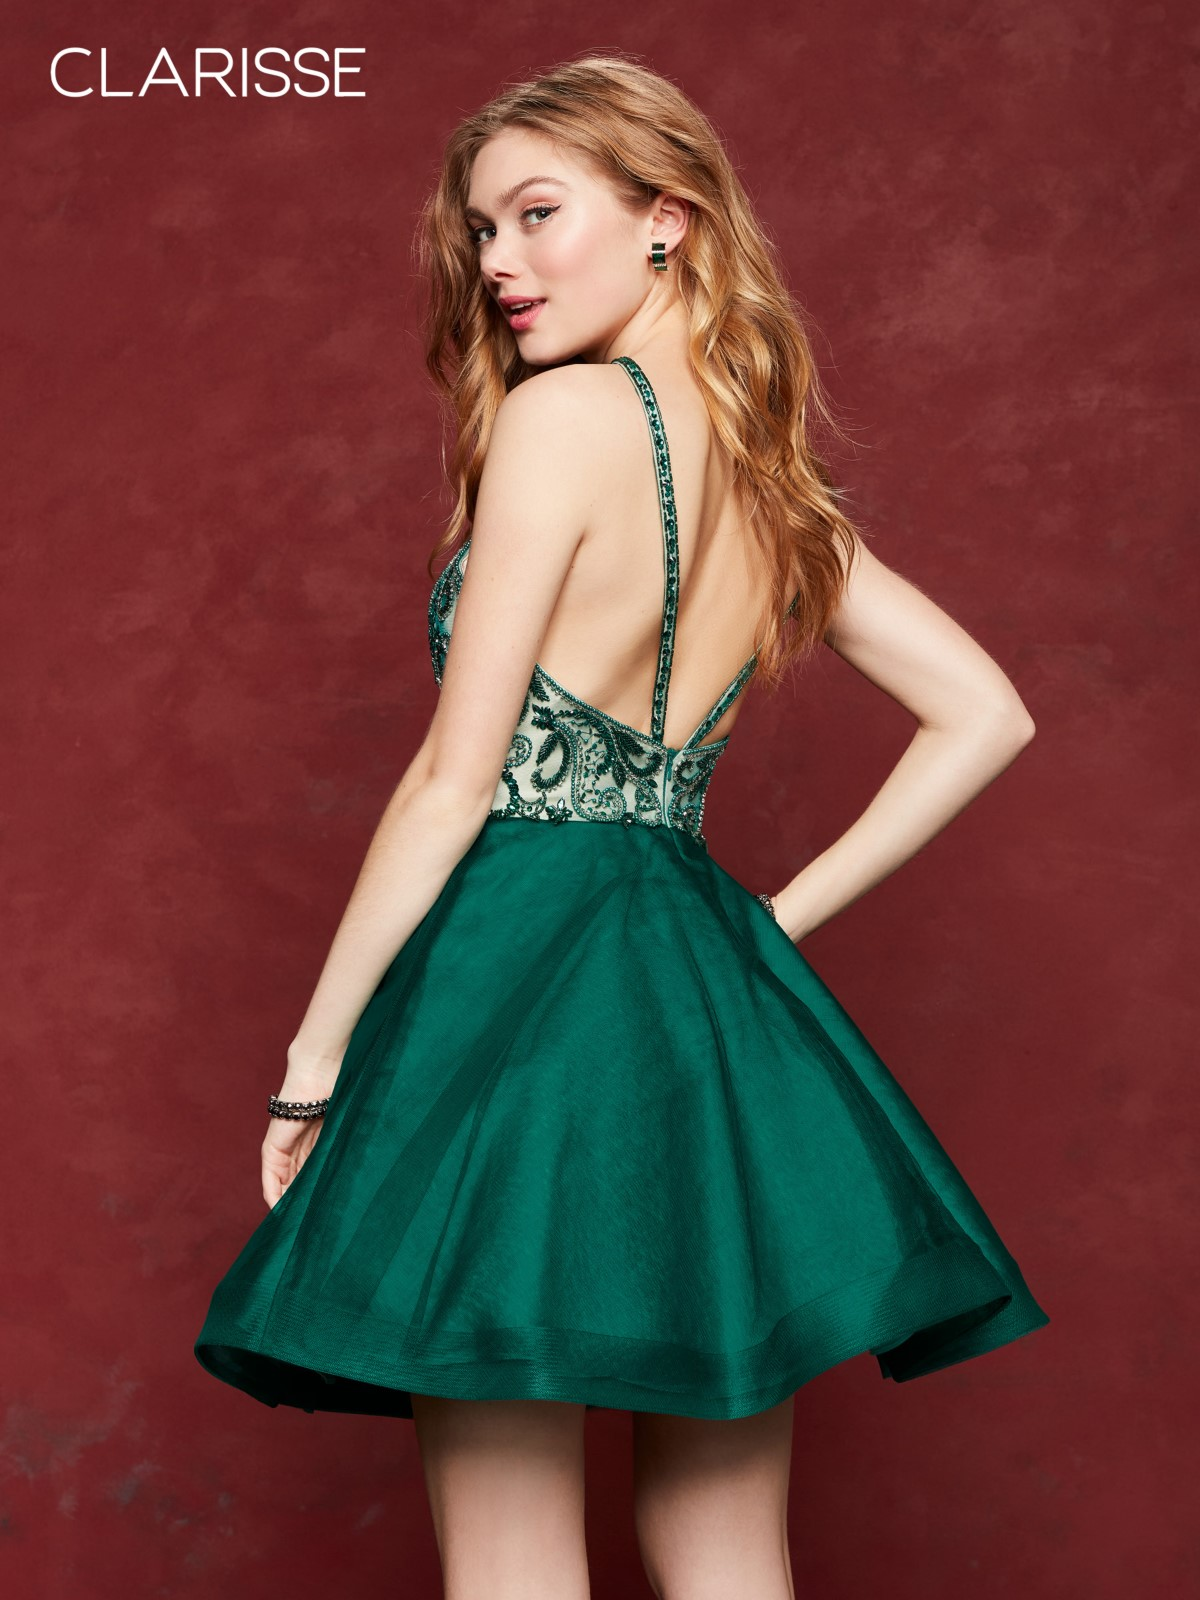 a6f74d43c6 Clarisse 3642 Forest Green Jeweled Homecoming Dress Clarisse 3642 Forest  Green Jeweled Homecoming Dress